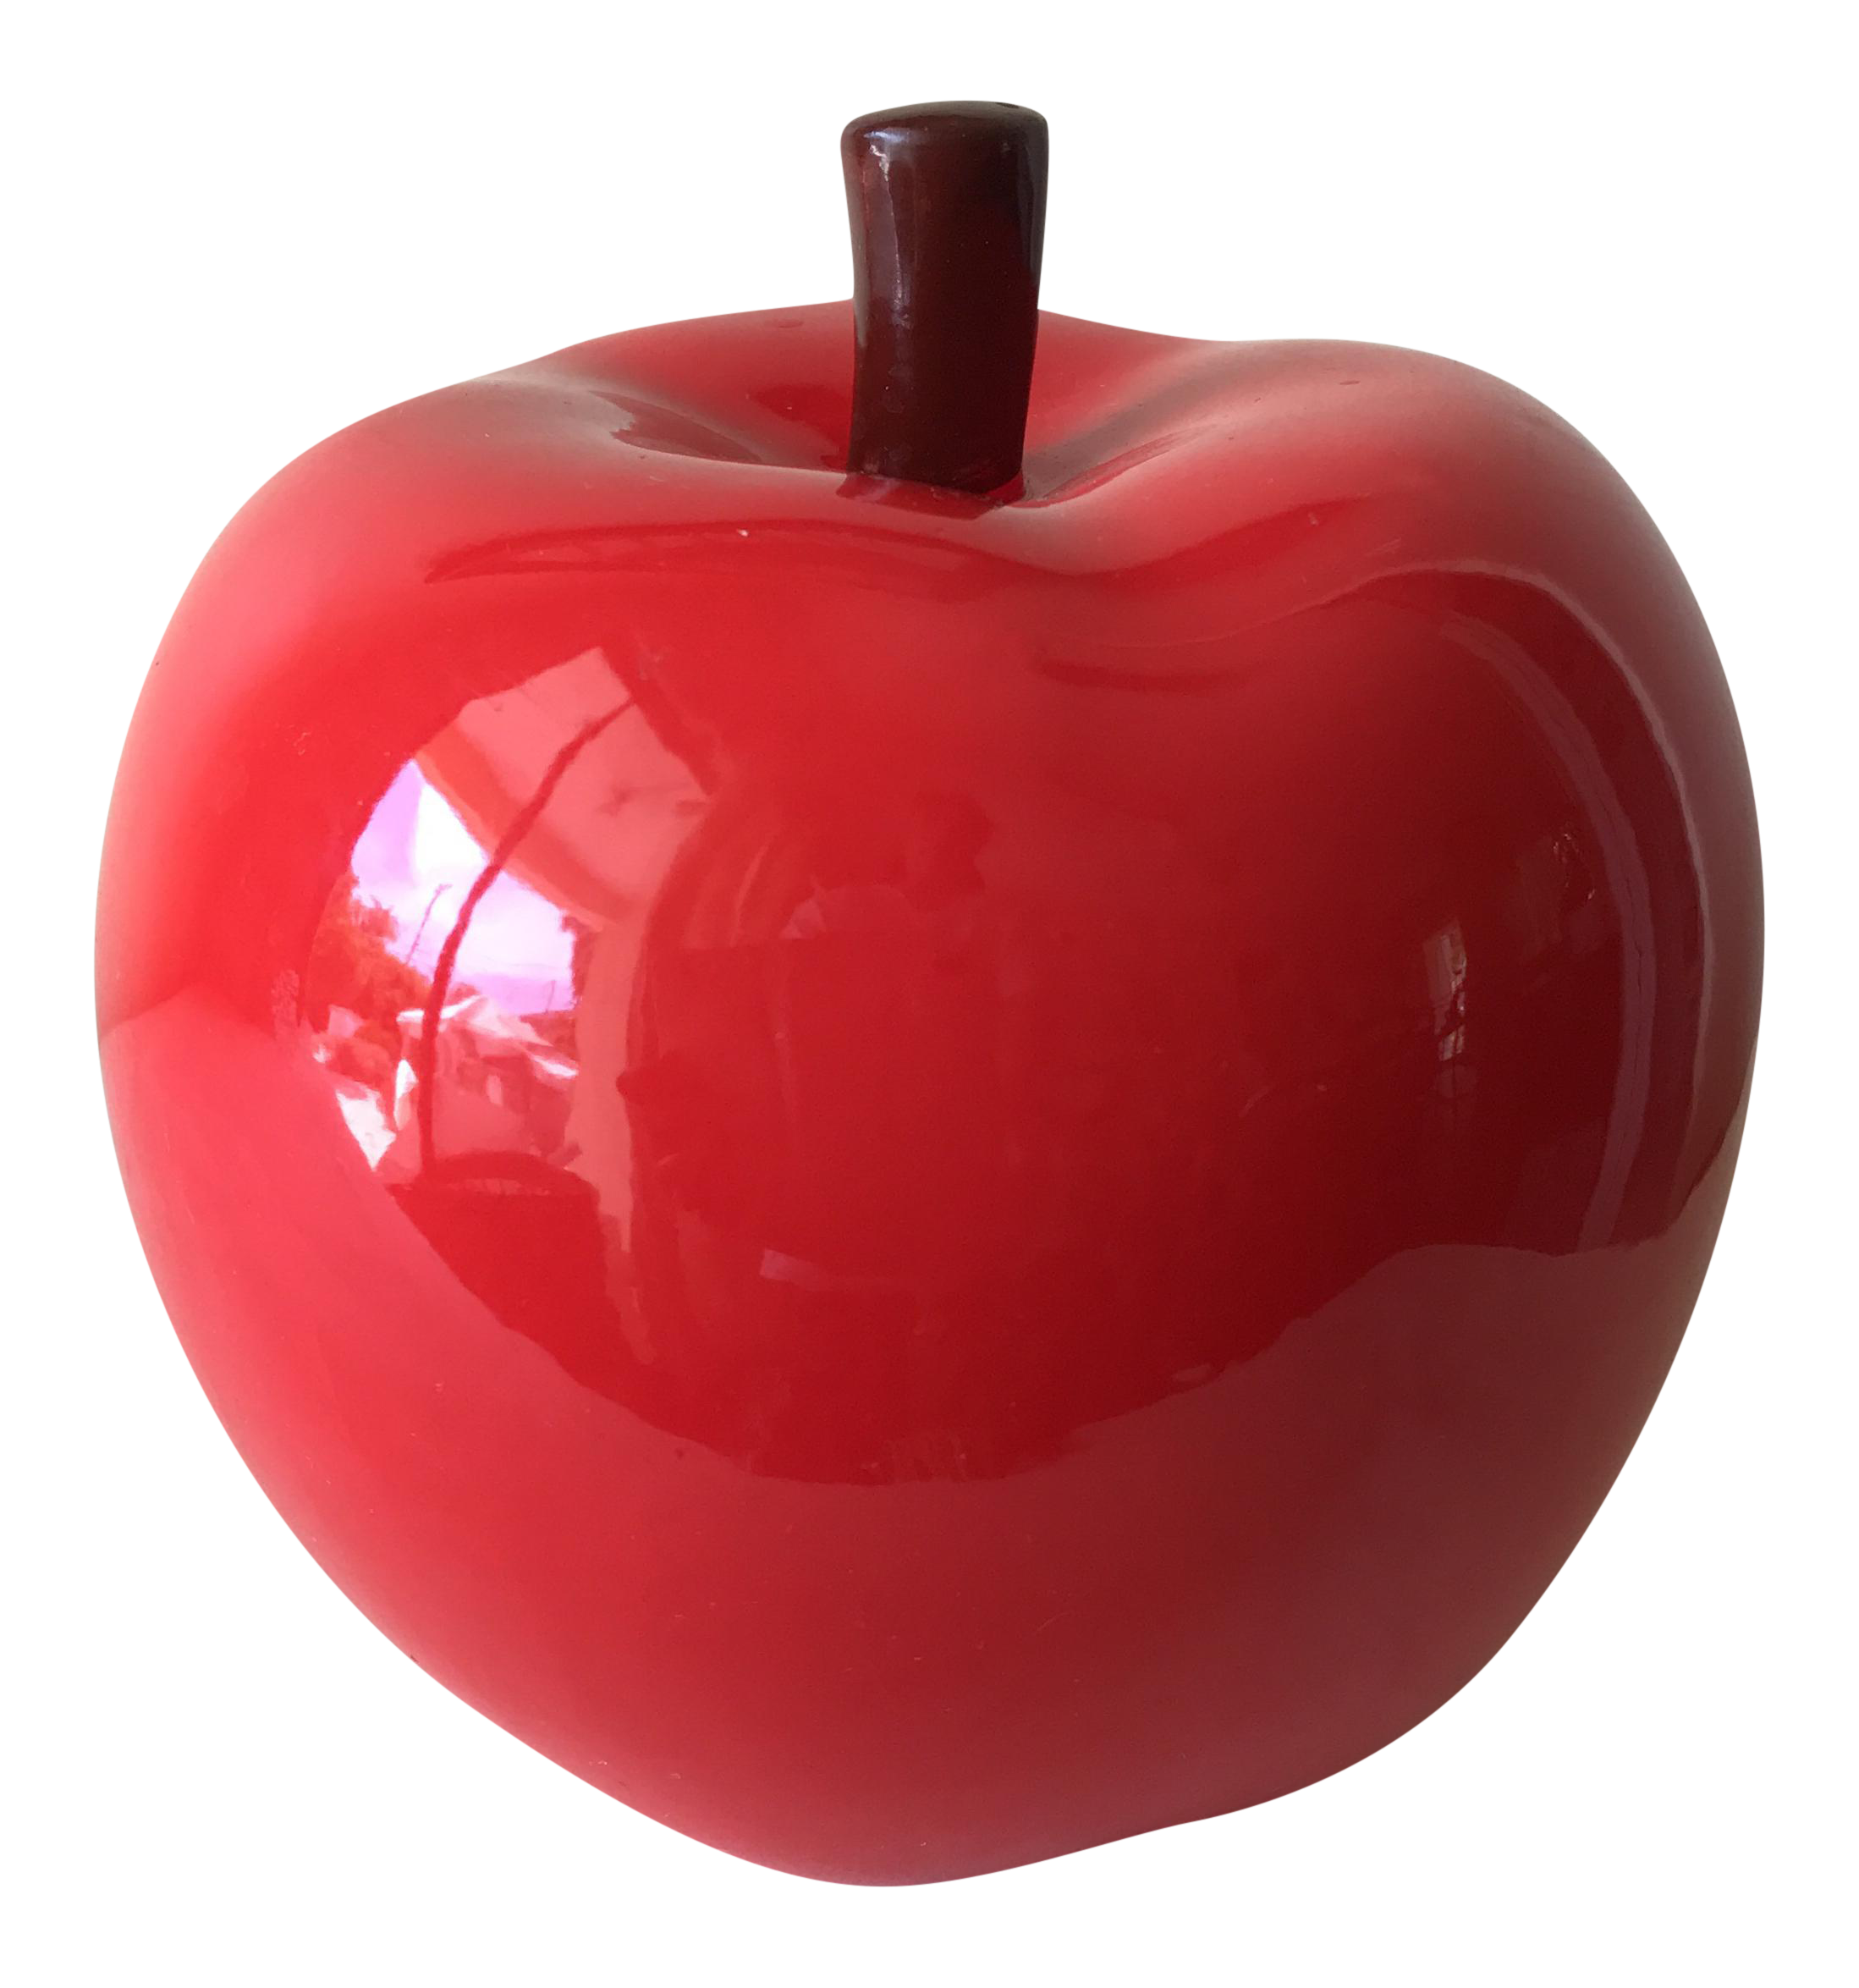 Ceramic Red Apple Figurine Chairish